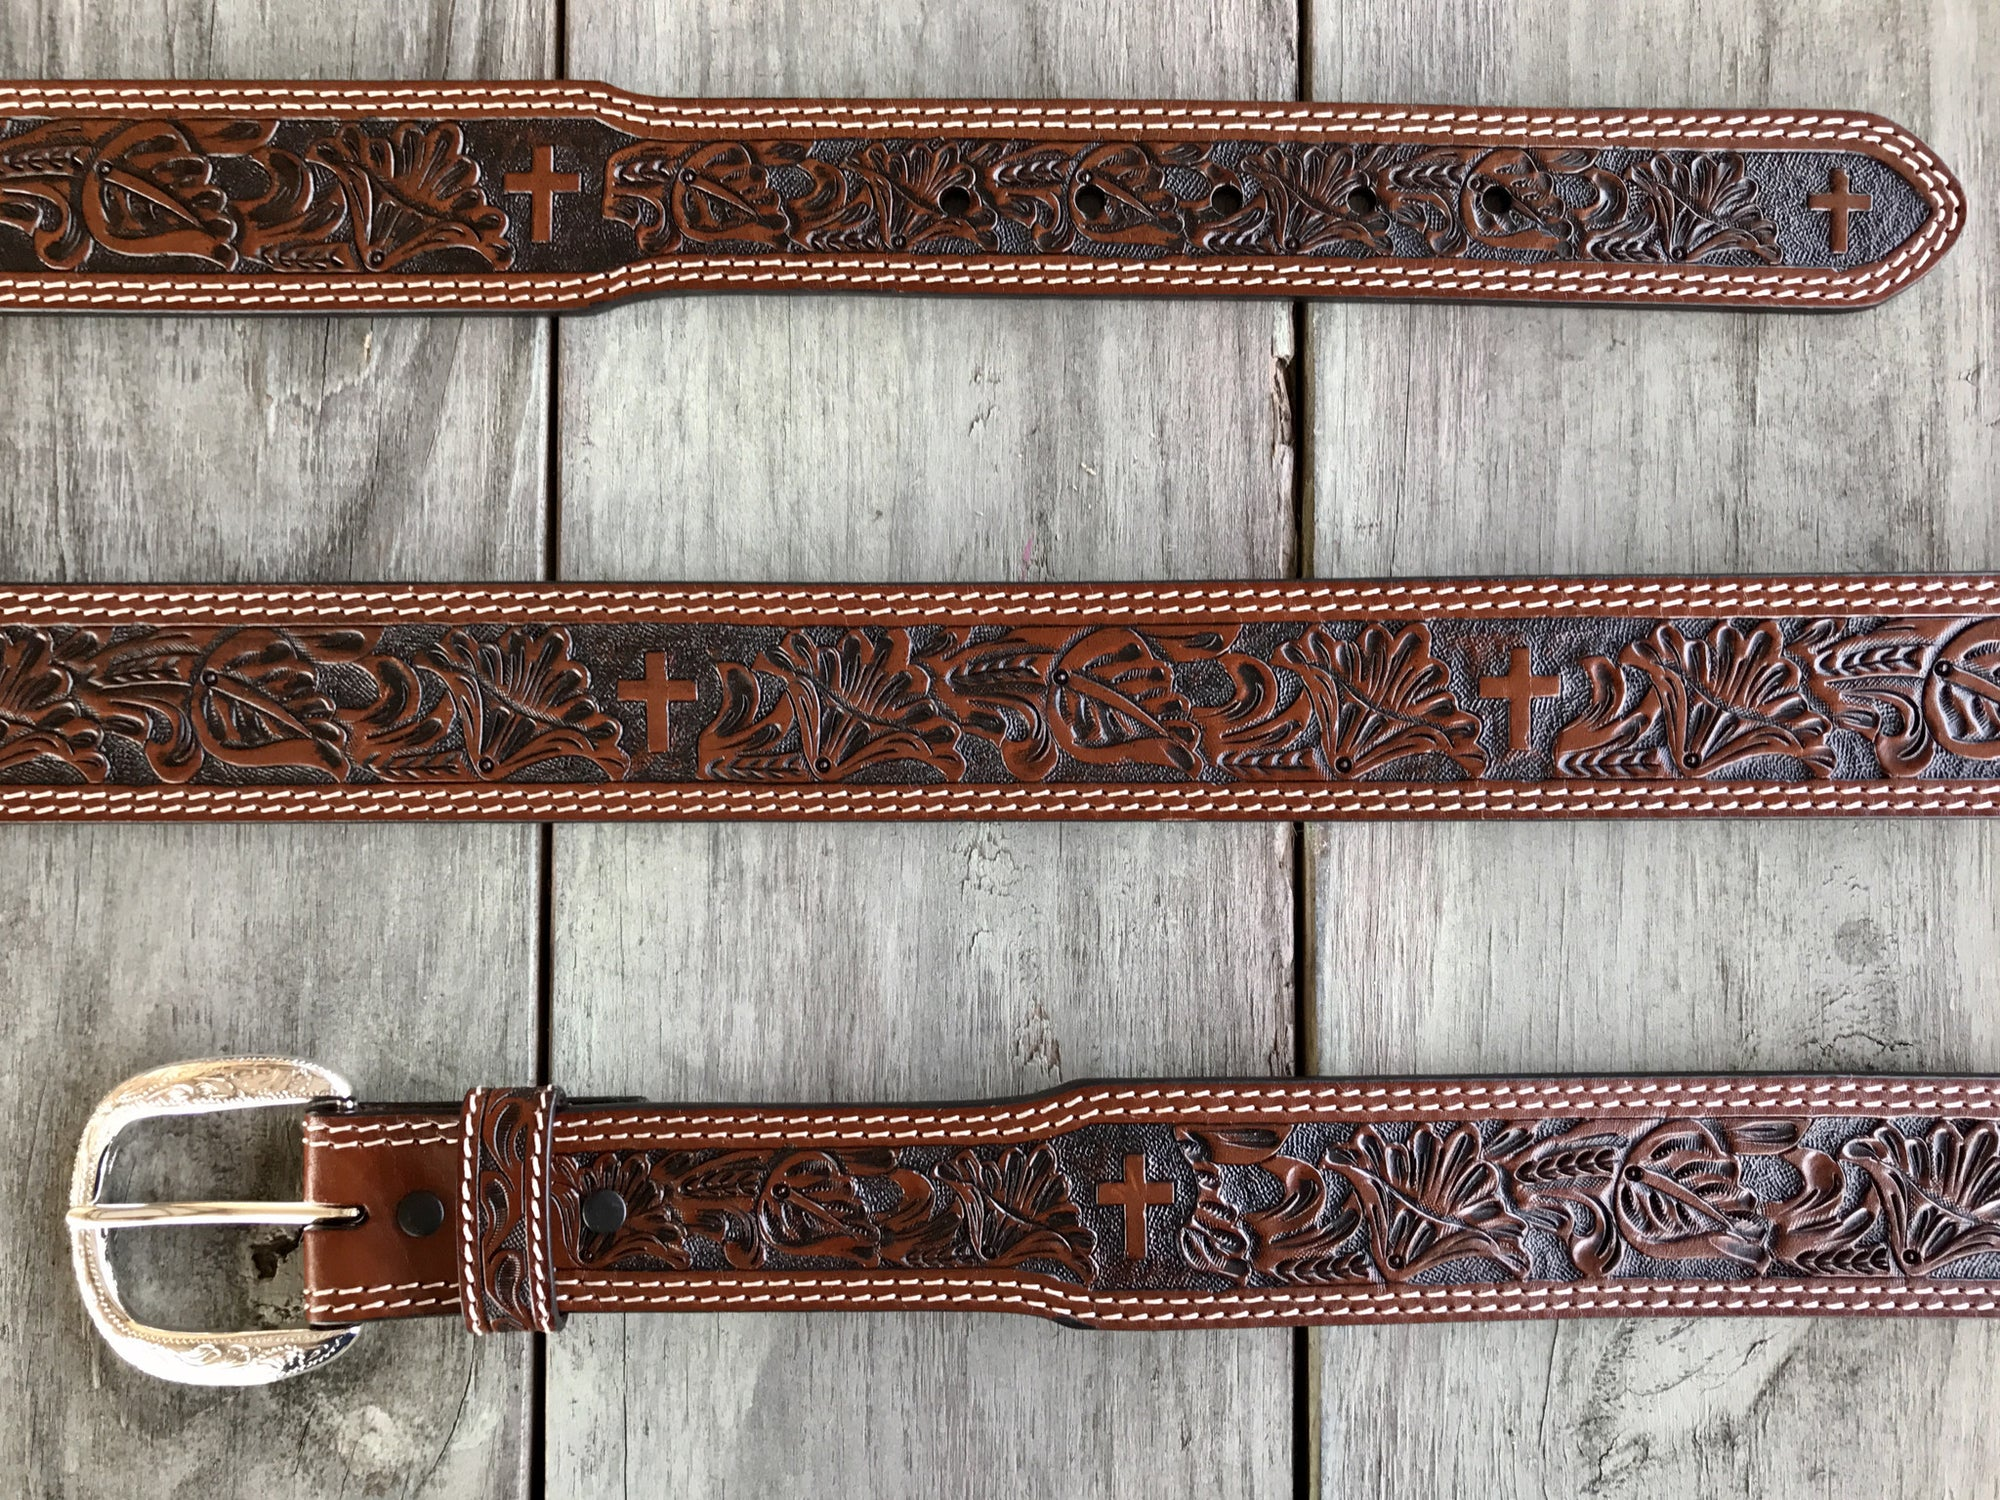 Cowboy Chrome Floral and Cross Hand Tooled Men's Belt